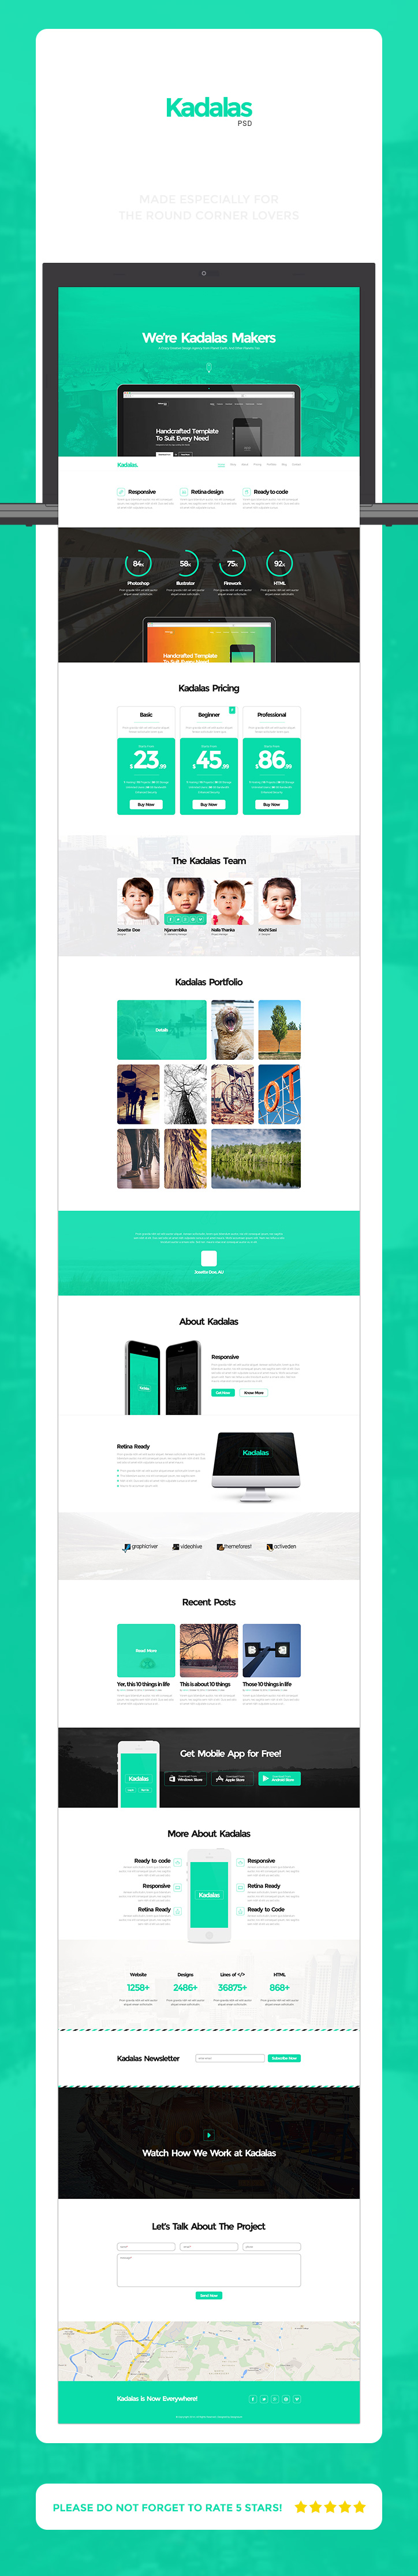 kadalas - psd | website themes and behance, Presentation templates